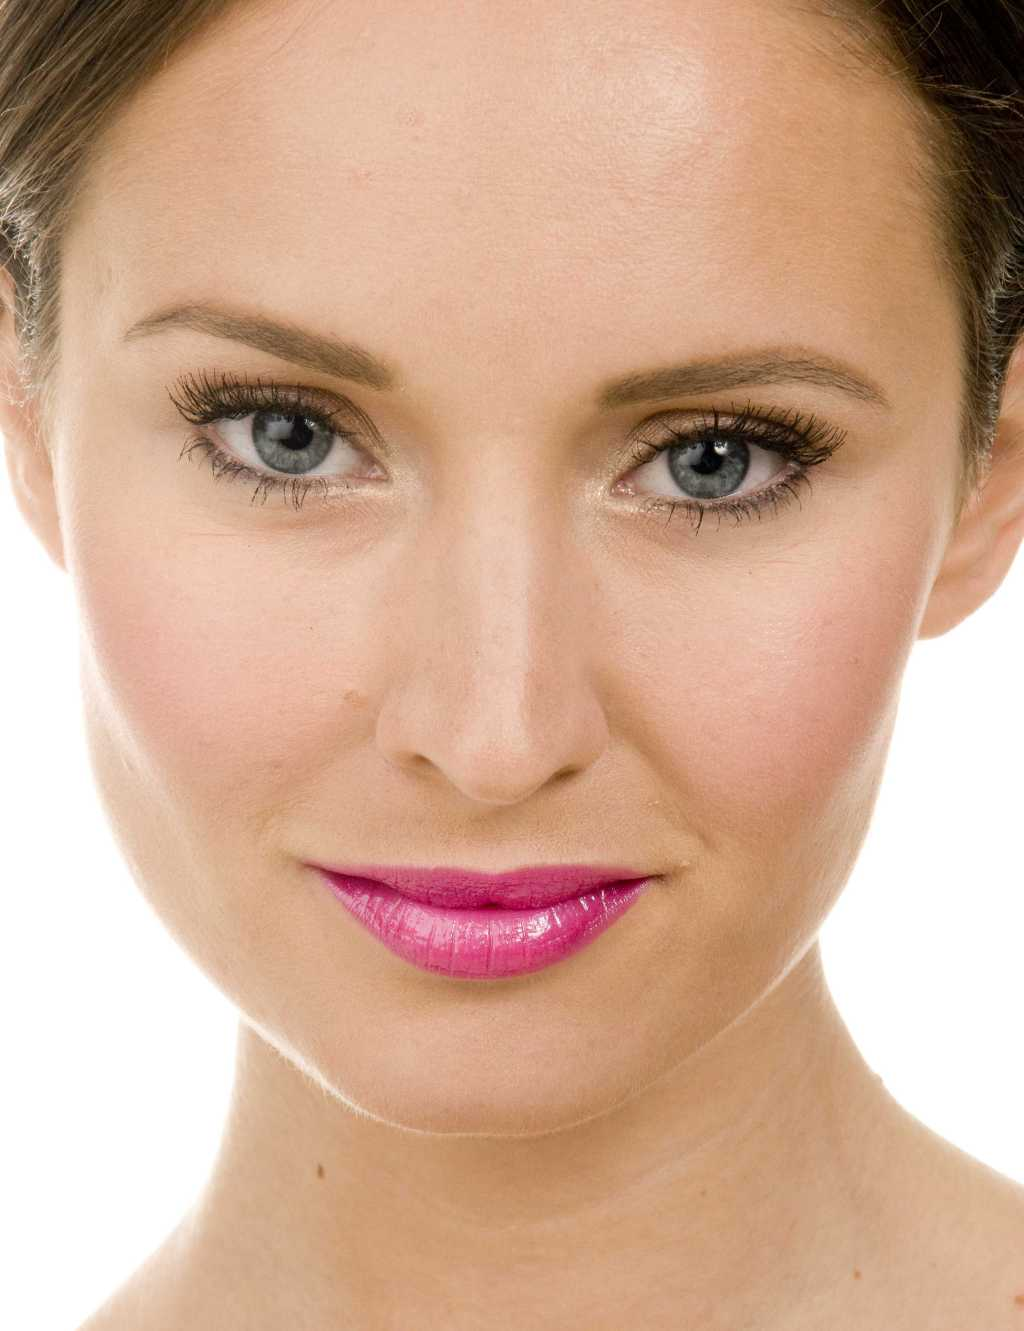 5 Makeup Tricks To Help You Look Younger